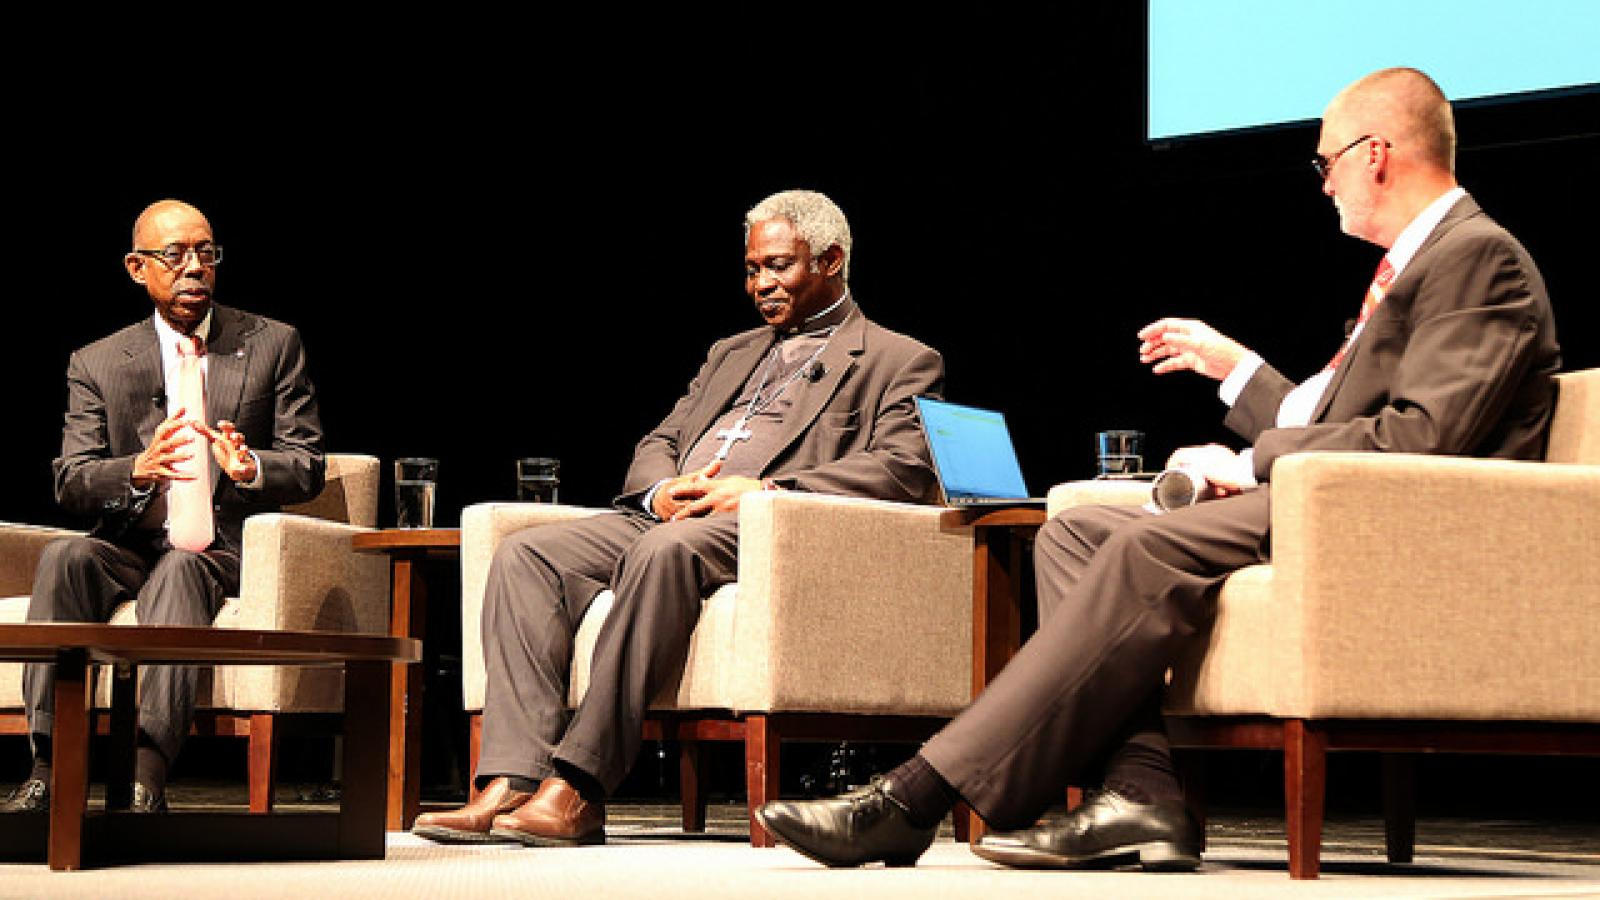 Cardinal Peter Turkson enjoys a fireside chat with President Drake